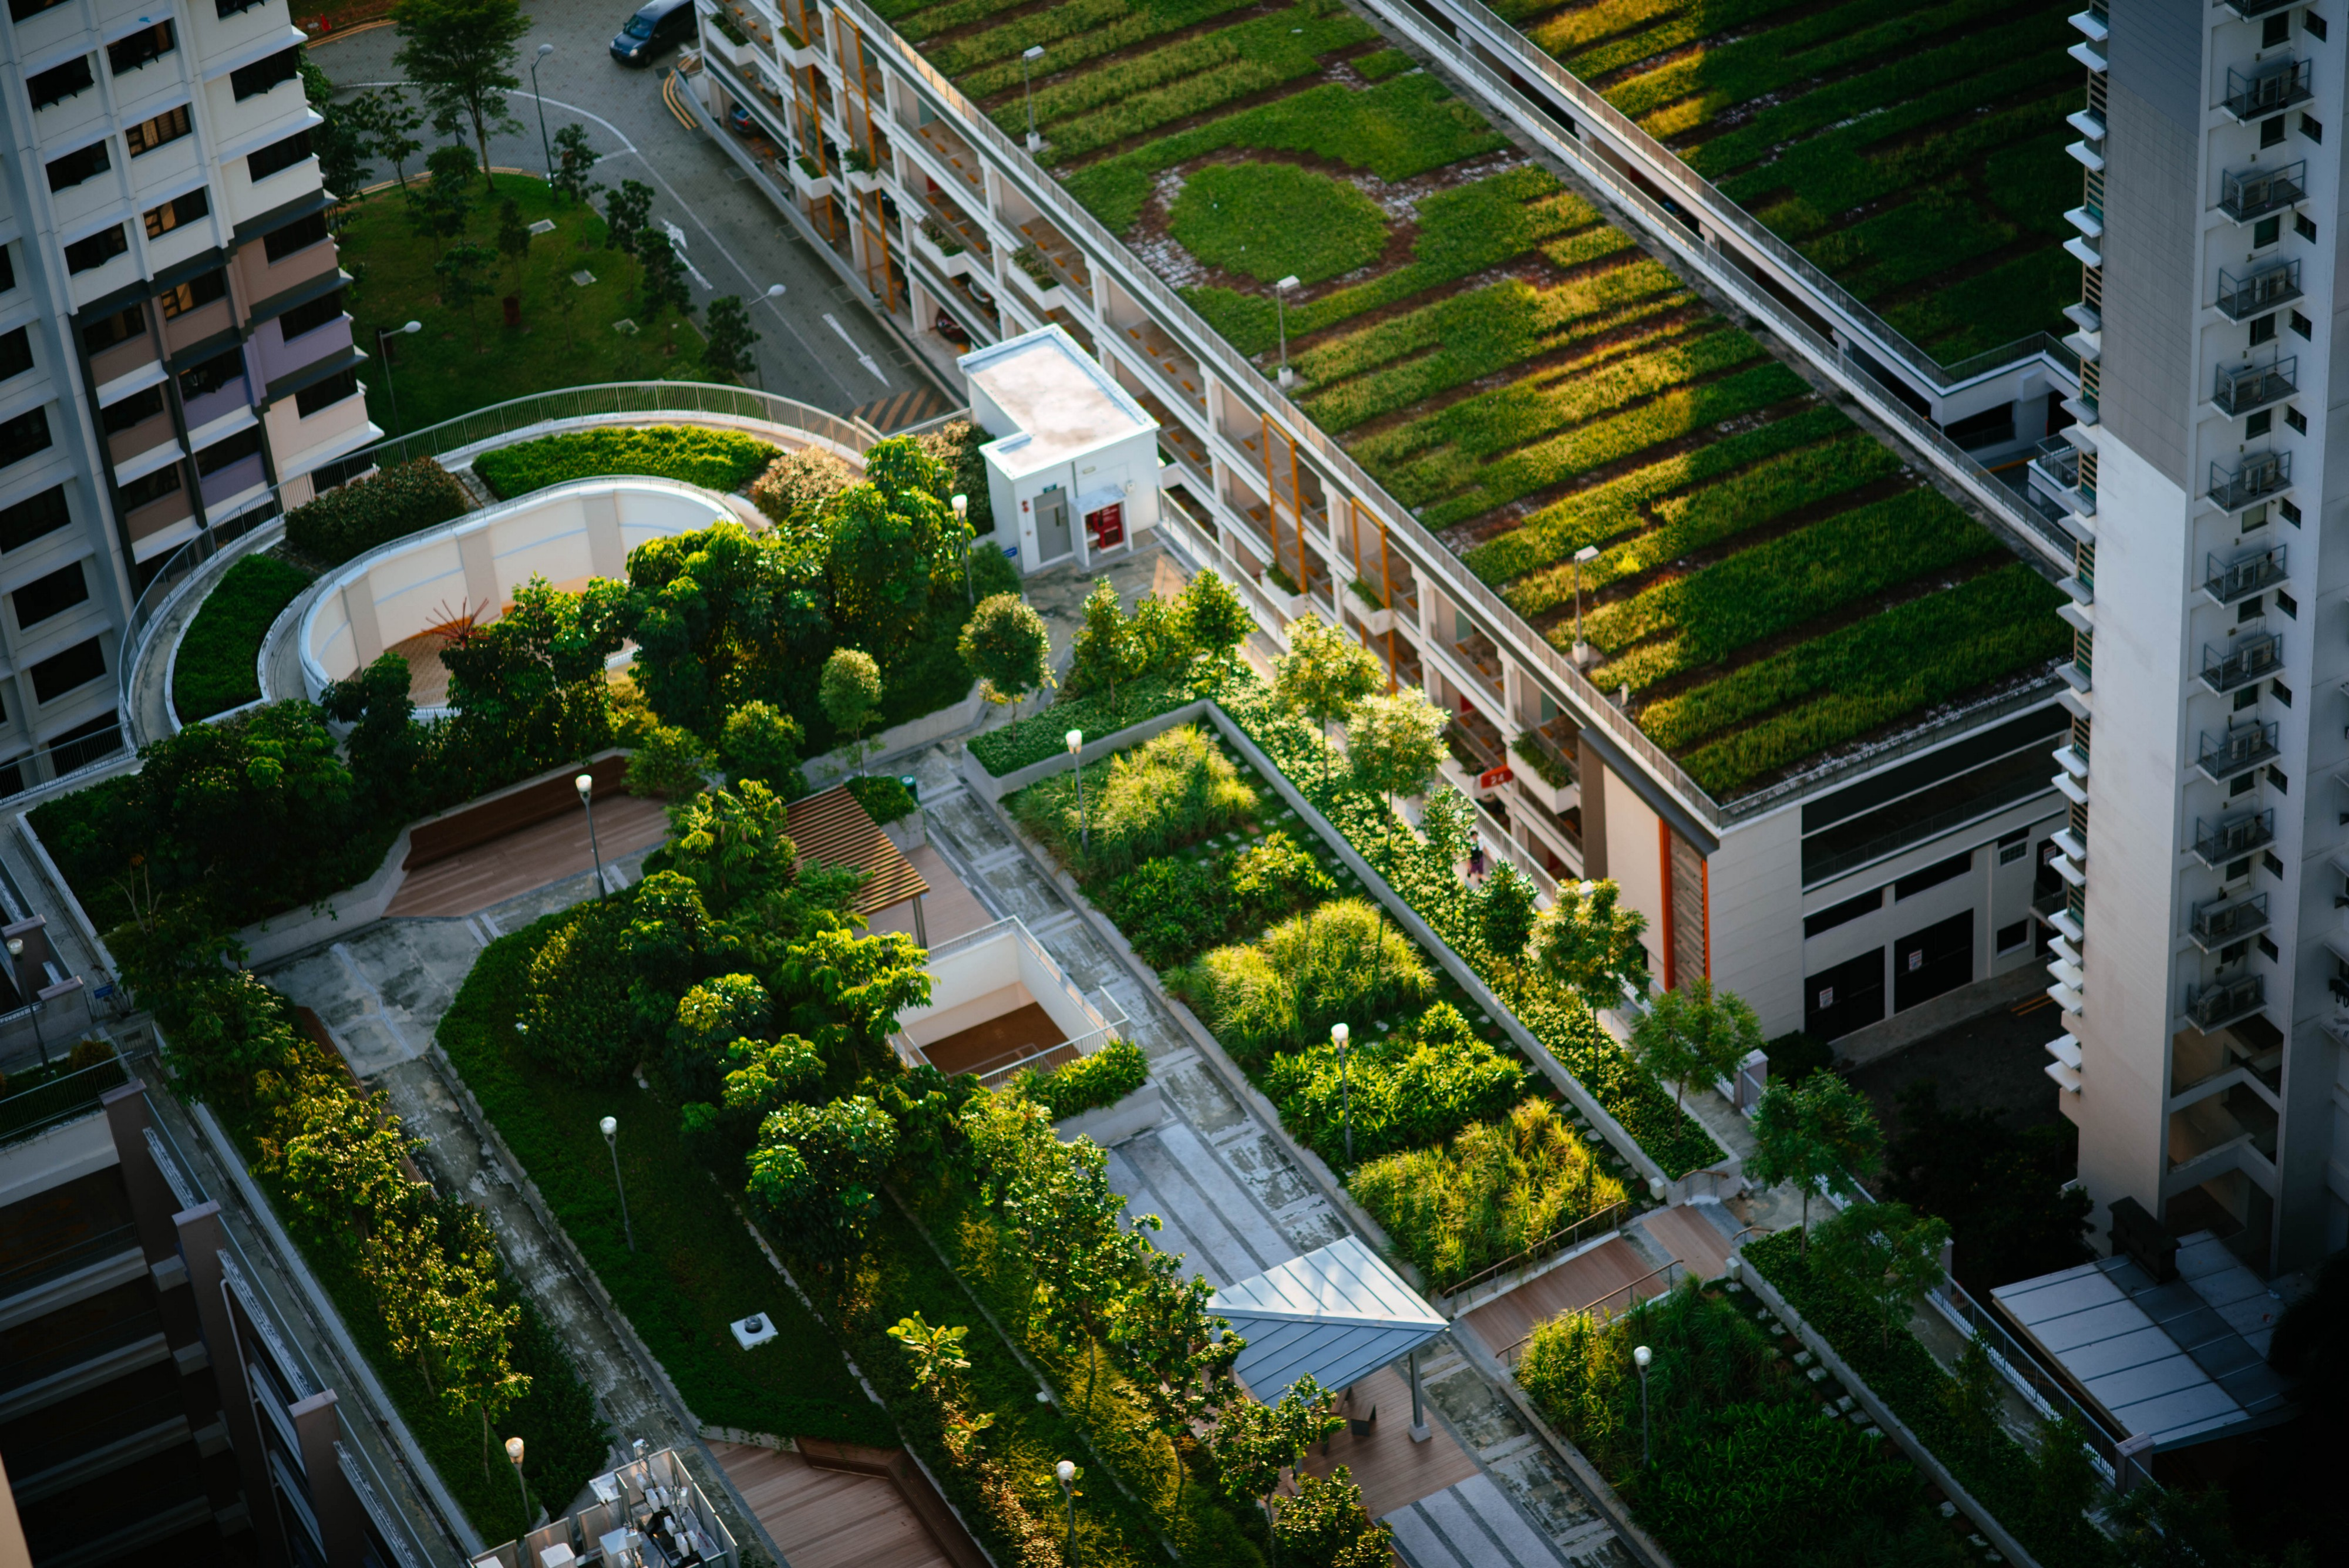 Aerial view of building top gardens.